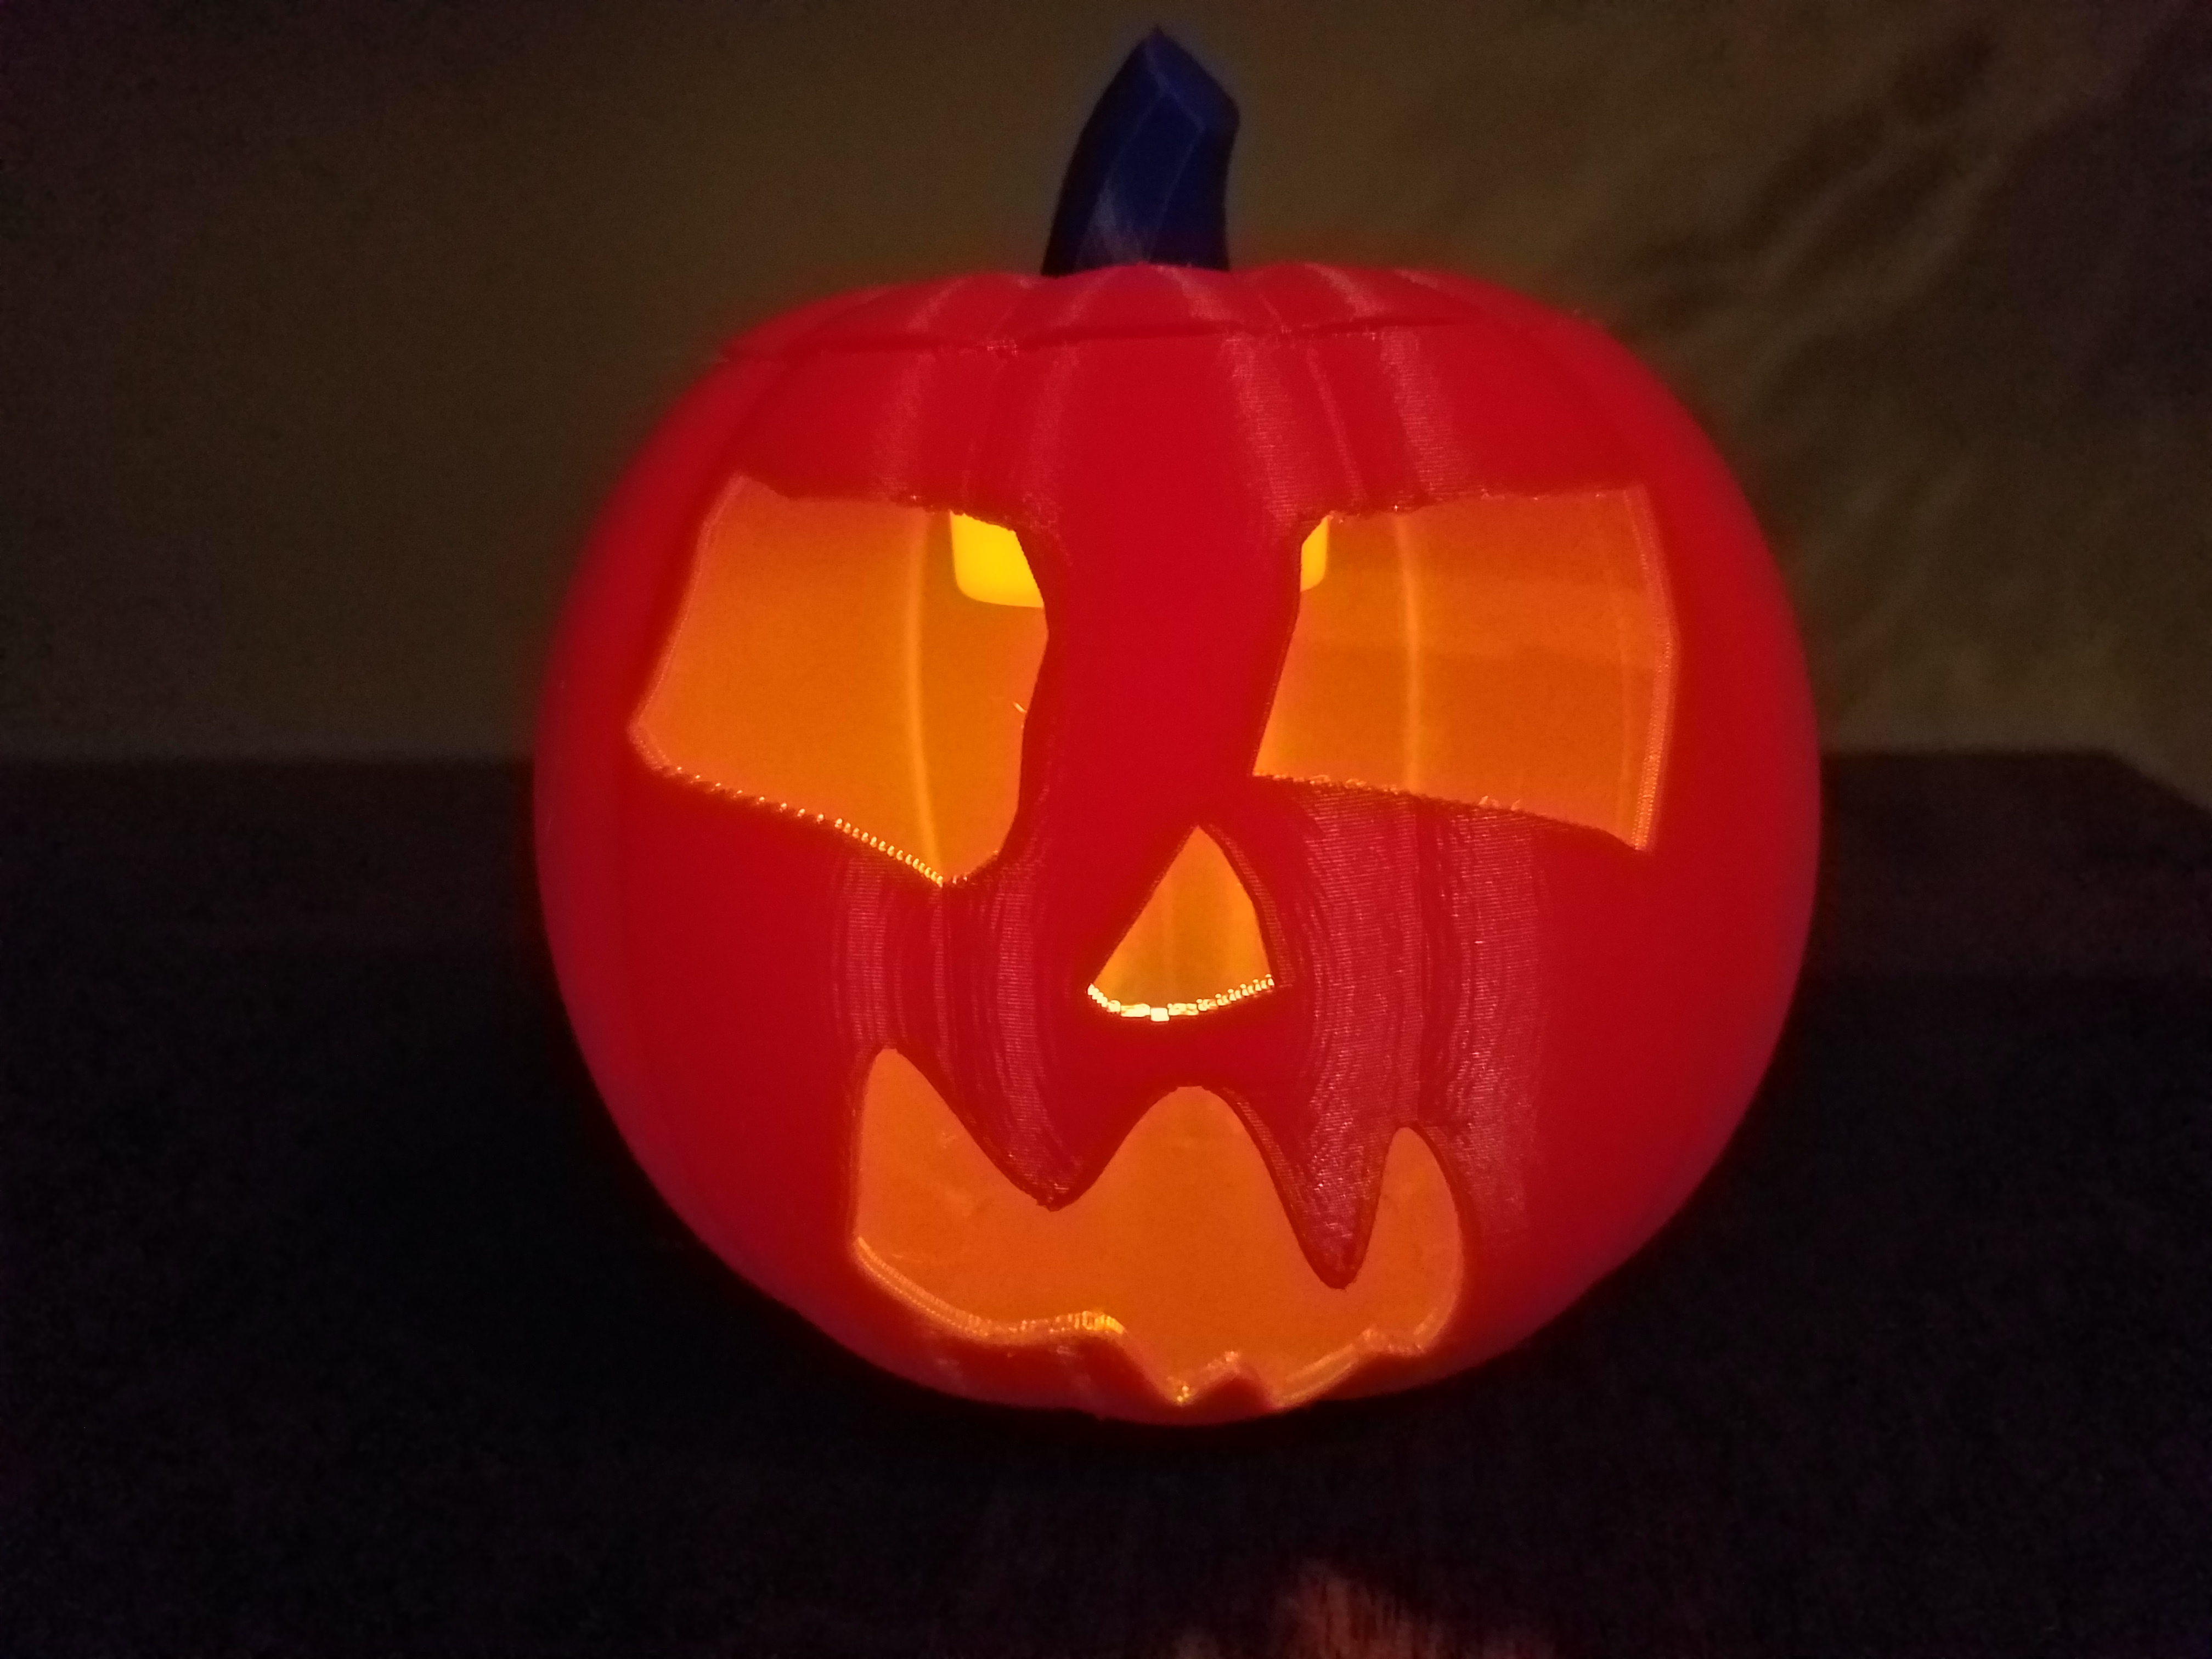 20191029_190543.jpg Download STL file Jack-O'-Lantern Scary Face • Template to 3D print, abbymath